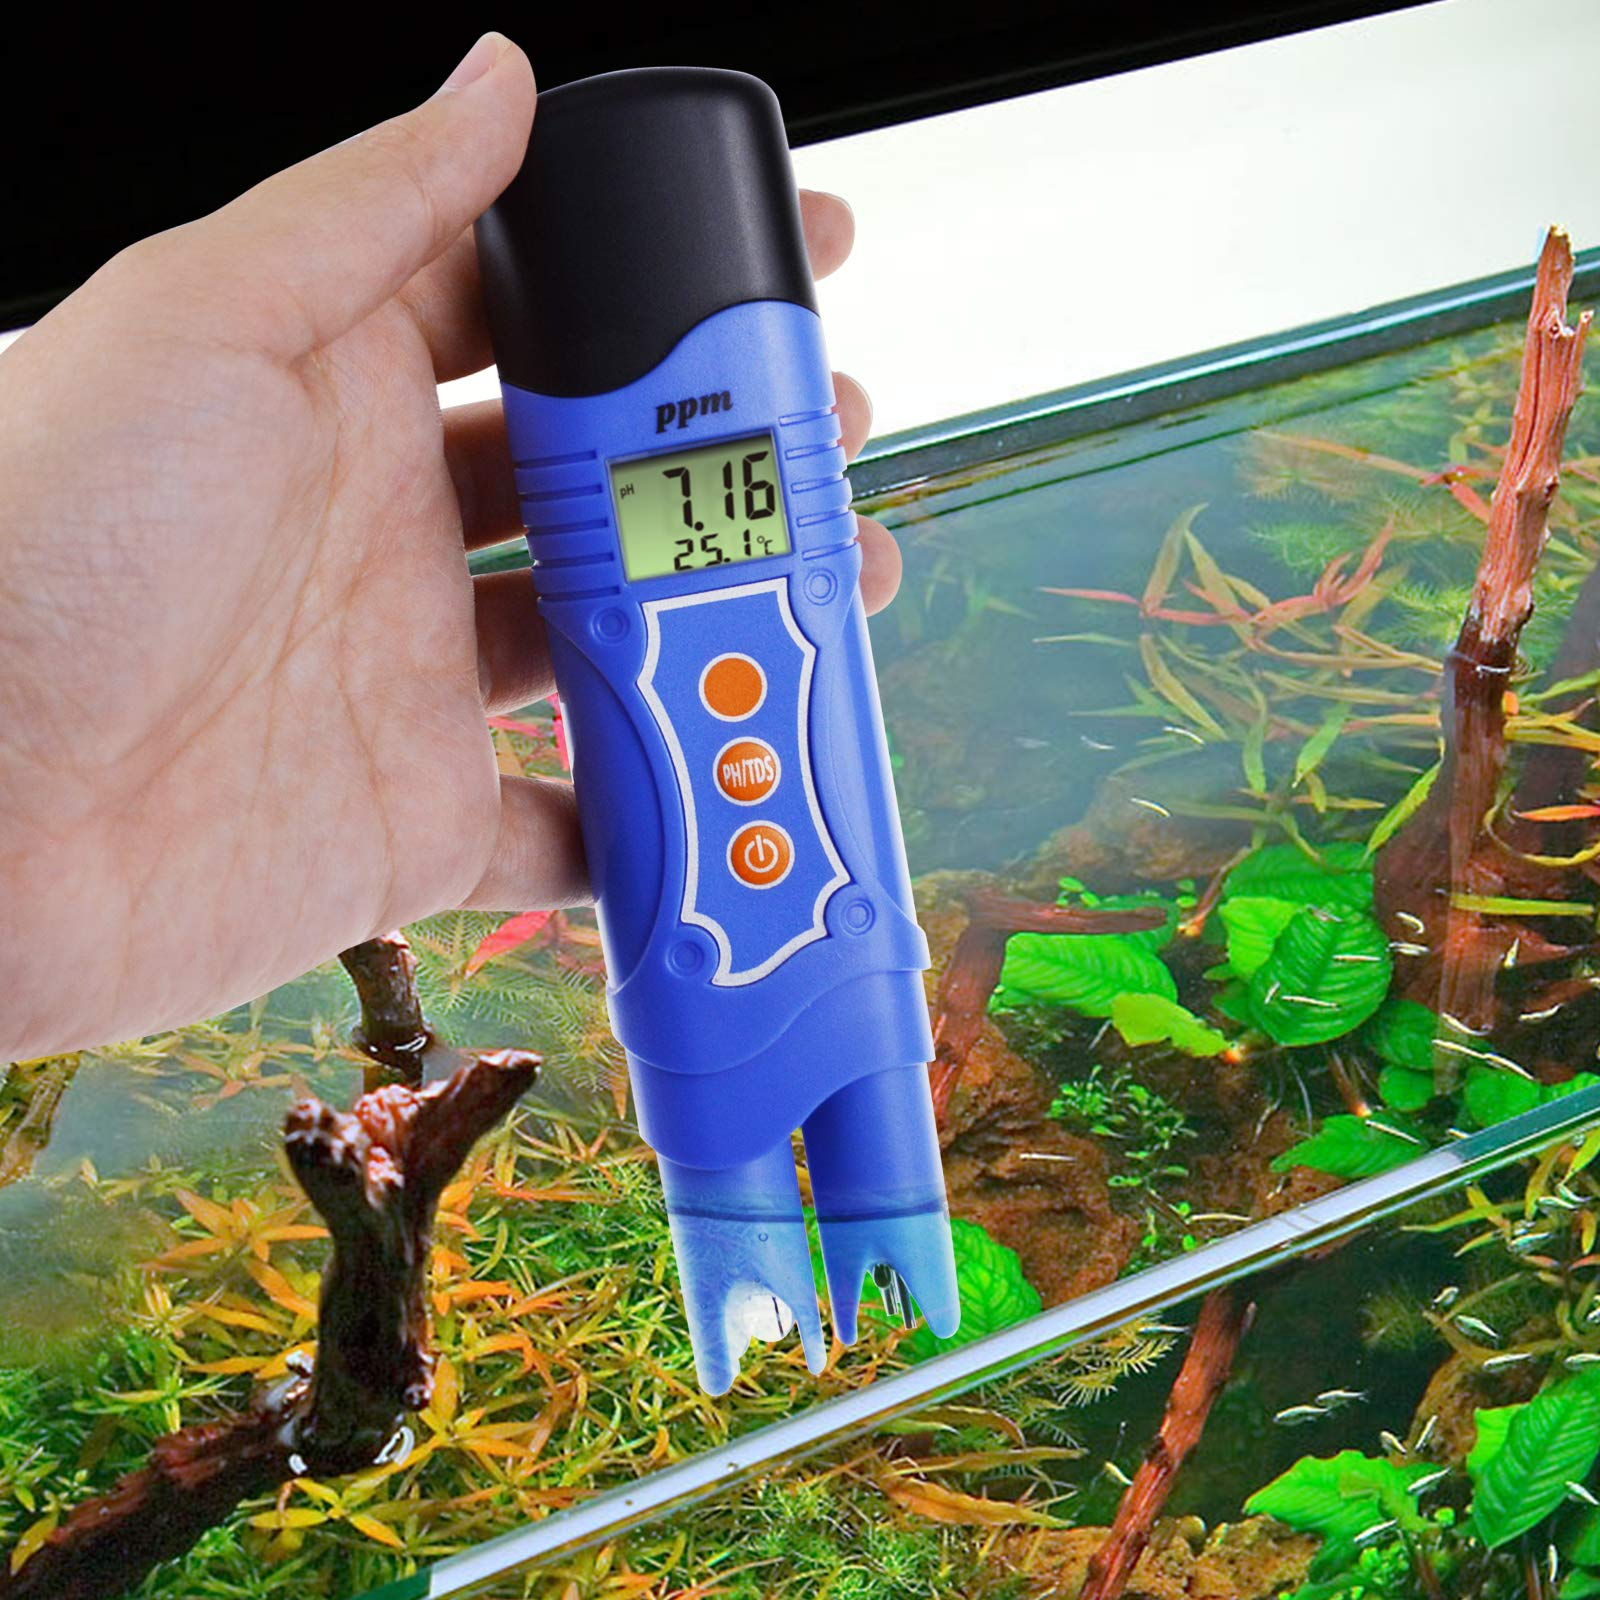 Gain Express 3-in-1 pH/TDS/Temperature Meter Combo Water Quality Tester Digital Pen-Type with ATC 0.00~14.00pH 0~1999mg/L(ppm) for Laboratories, Hydroponics, Aquariums, Pool, Spa by Gain Express (Image #2)